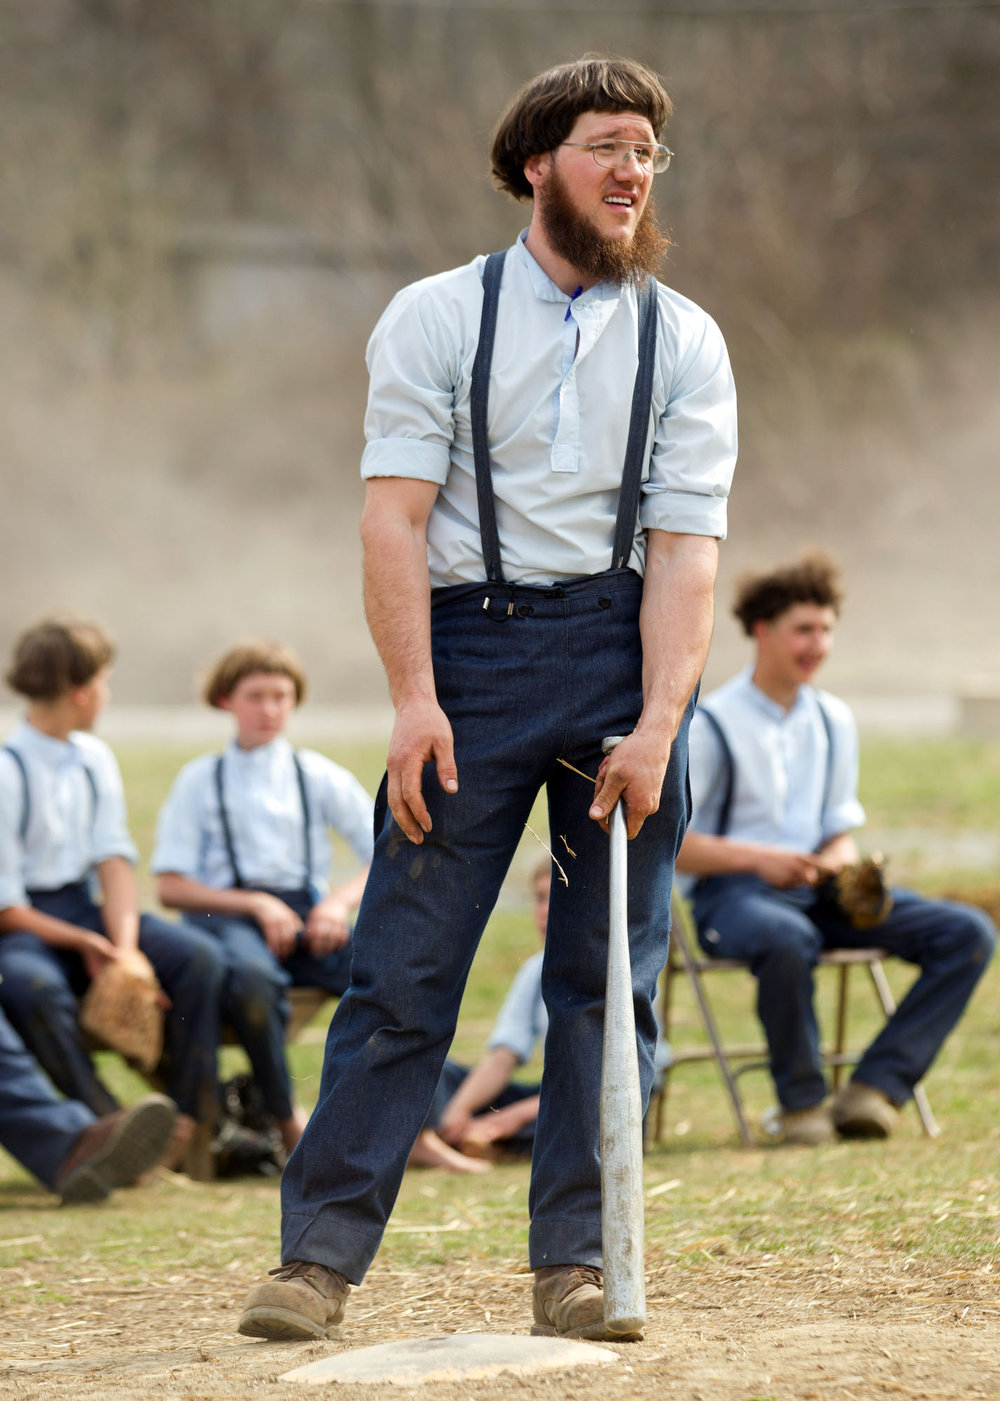 . Freeman Burkholder waits for his at bat during a game of baseball at the farewell picnic in Bergholz, Ohio on Tuesday, April 9, 2013.  The picnic was for Burkholder and other Amish people leaving for prison this week for their part in the hair and beard cutting scandal against other Amish members.  (AP Photo/Scott R. Galvin)